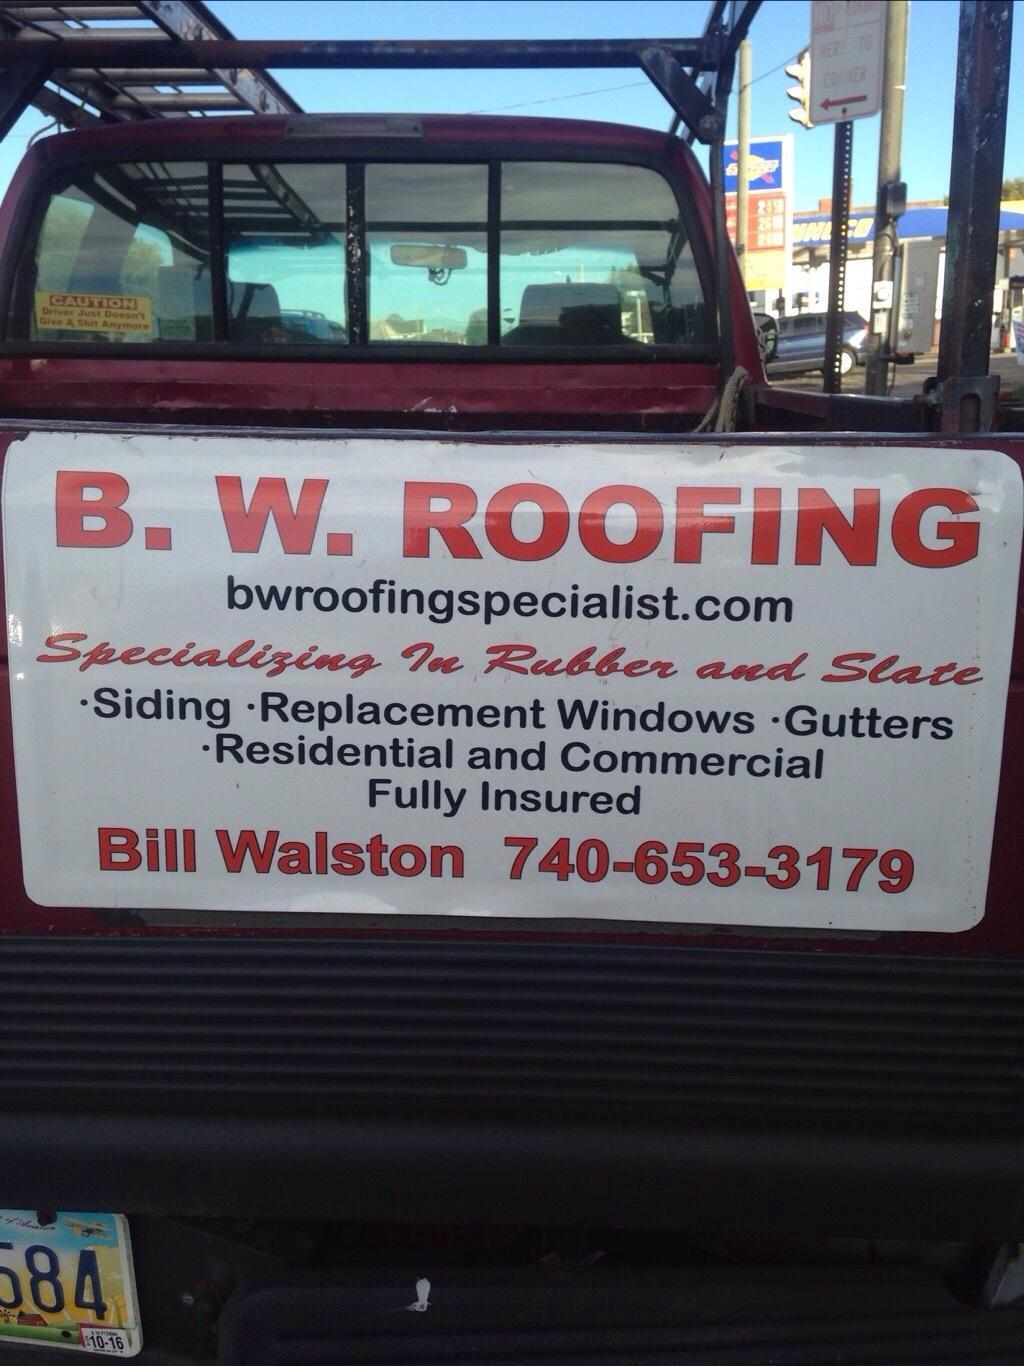 BW Roofing image 3